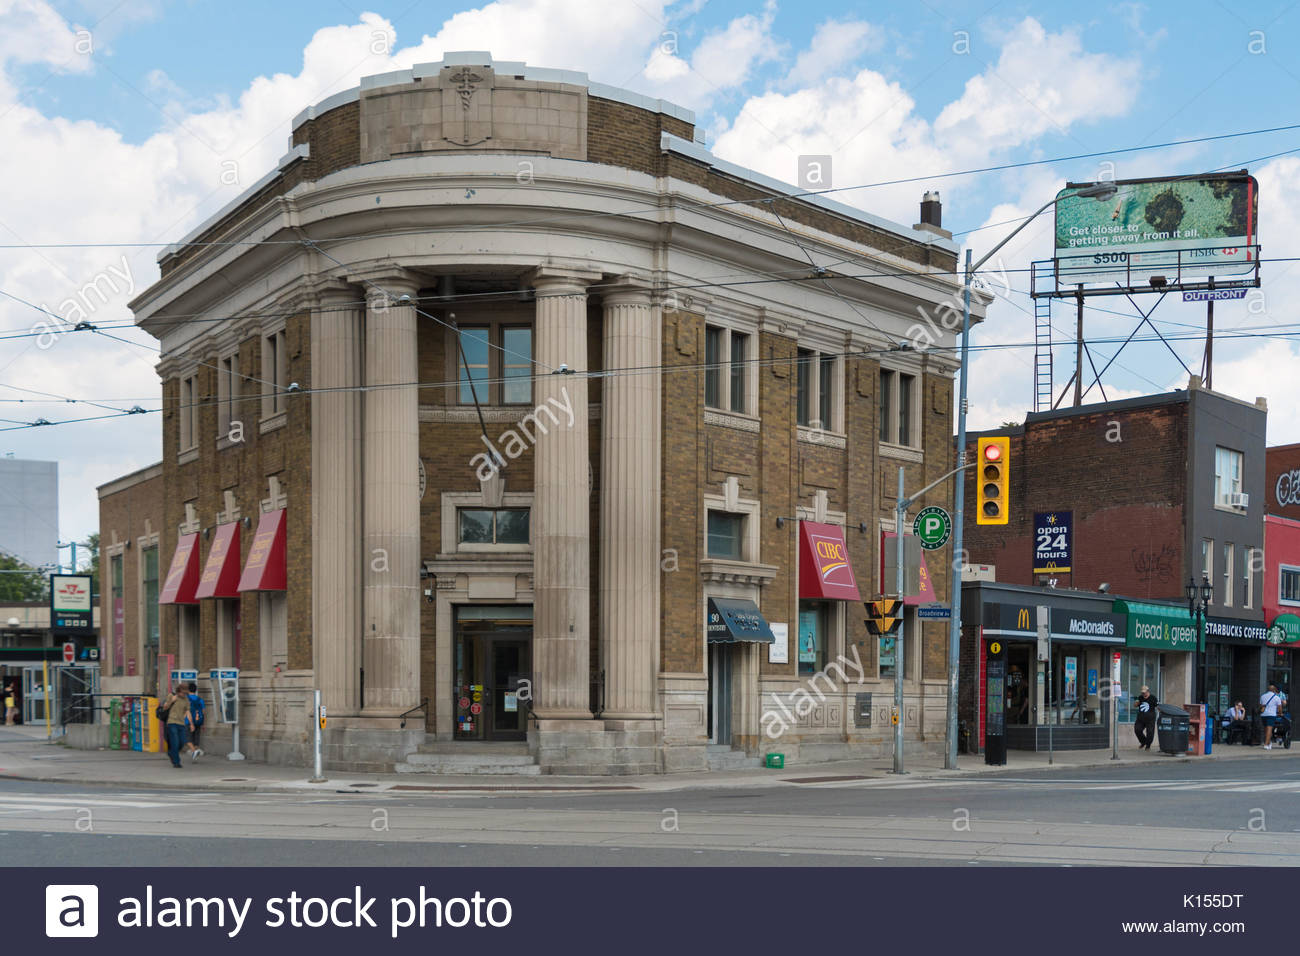 CIBC branch in old vintage building at Danforth and Broadview Avenues. The image has the traditional streetcars wires and depict the everyday lifestyl - Stock Image